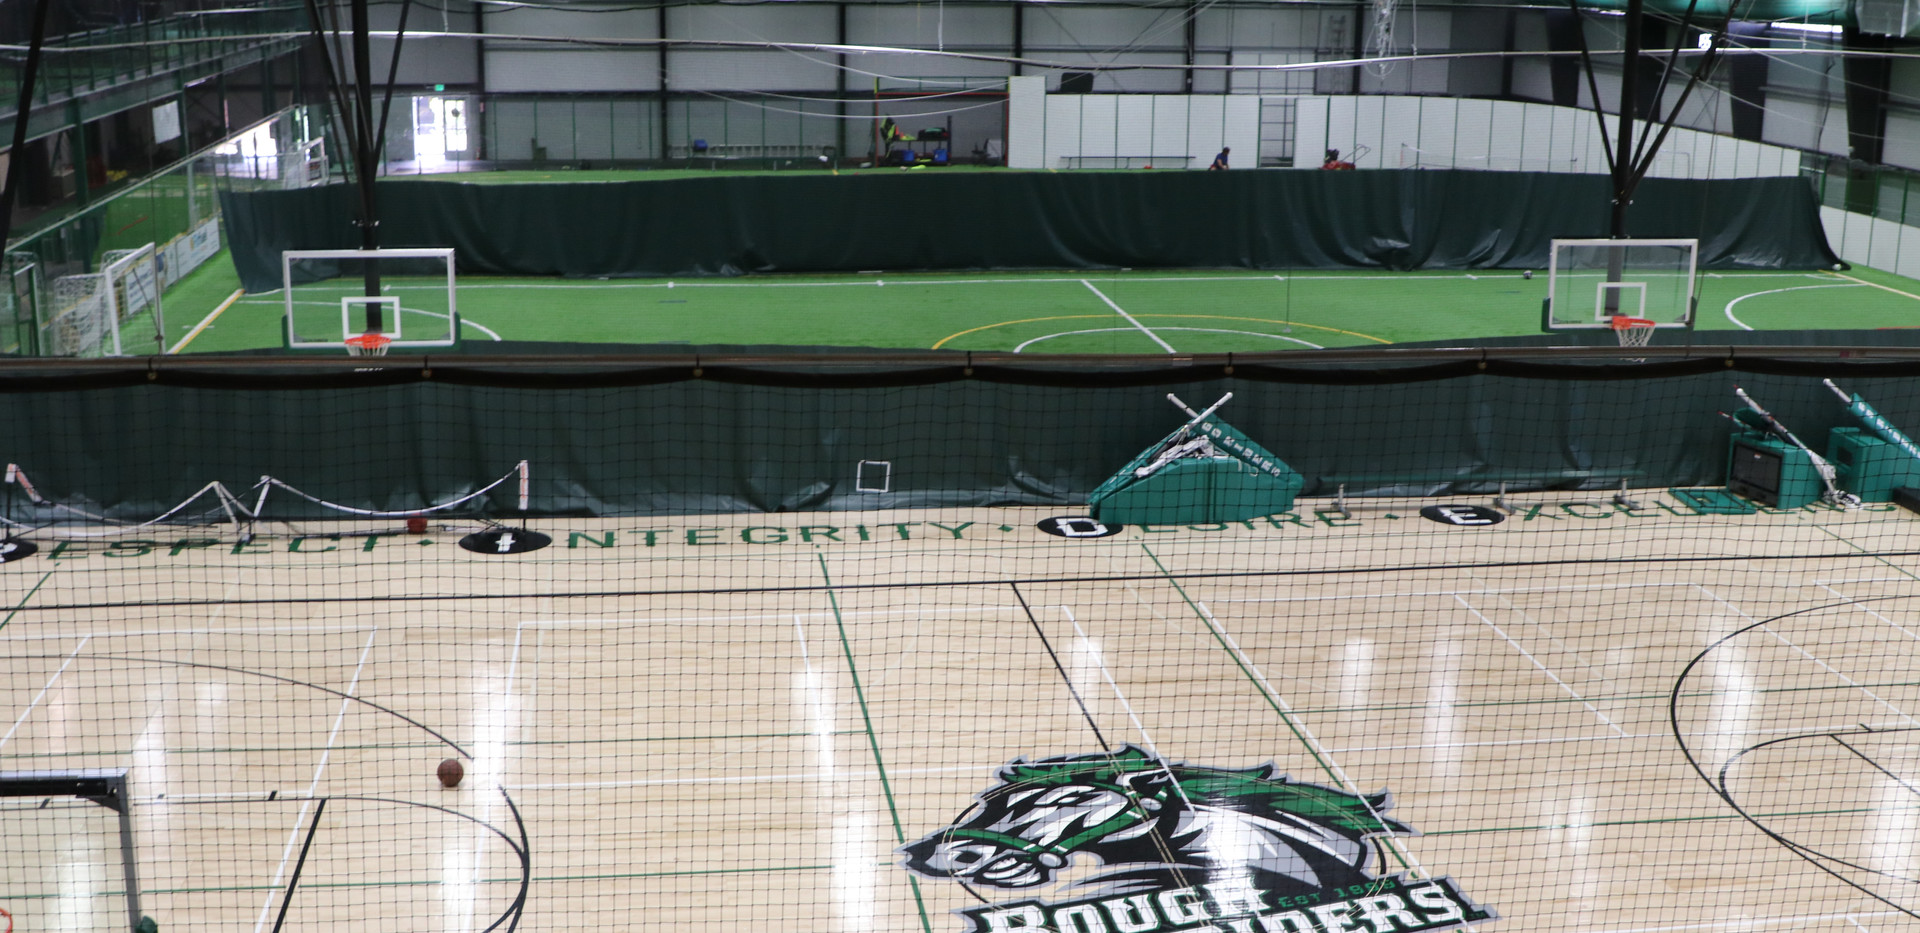 Court and Turf